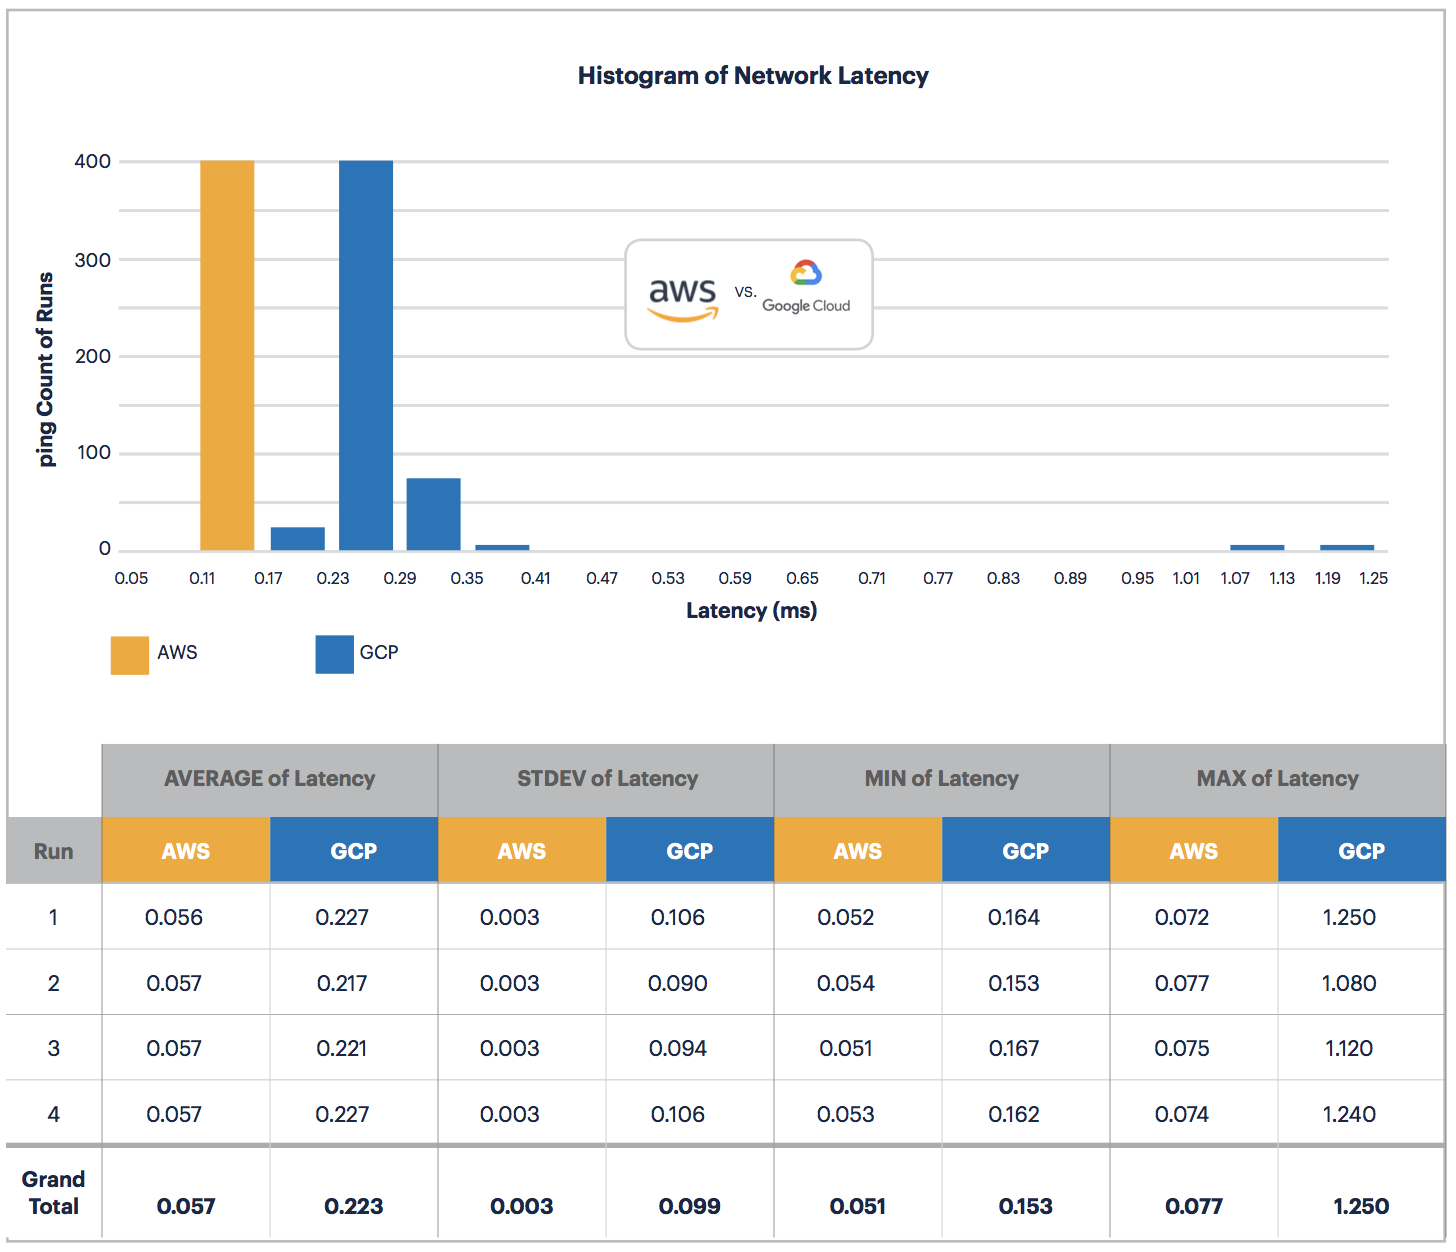 AWS vs GCP: Network Latency Histogram